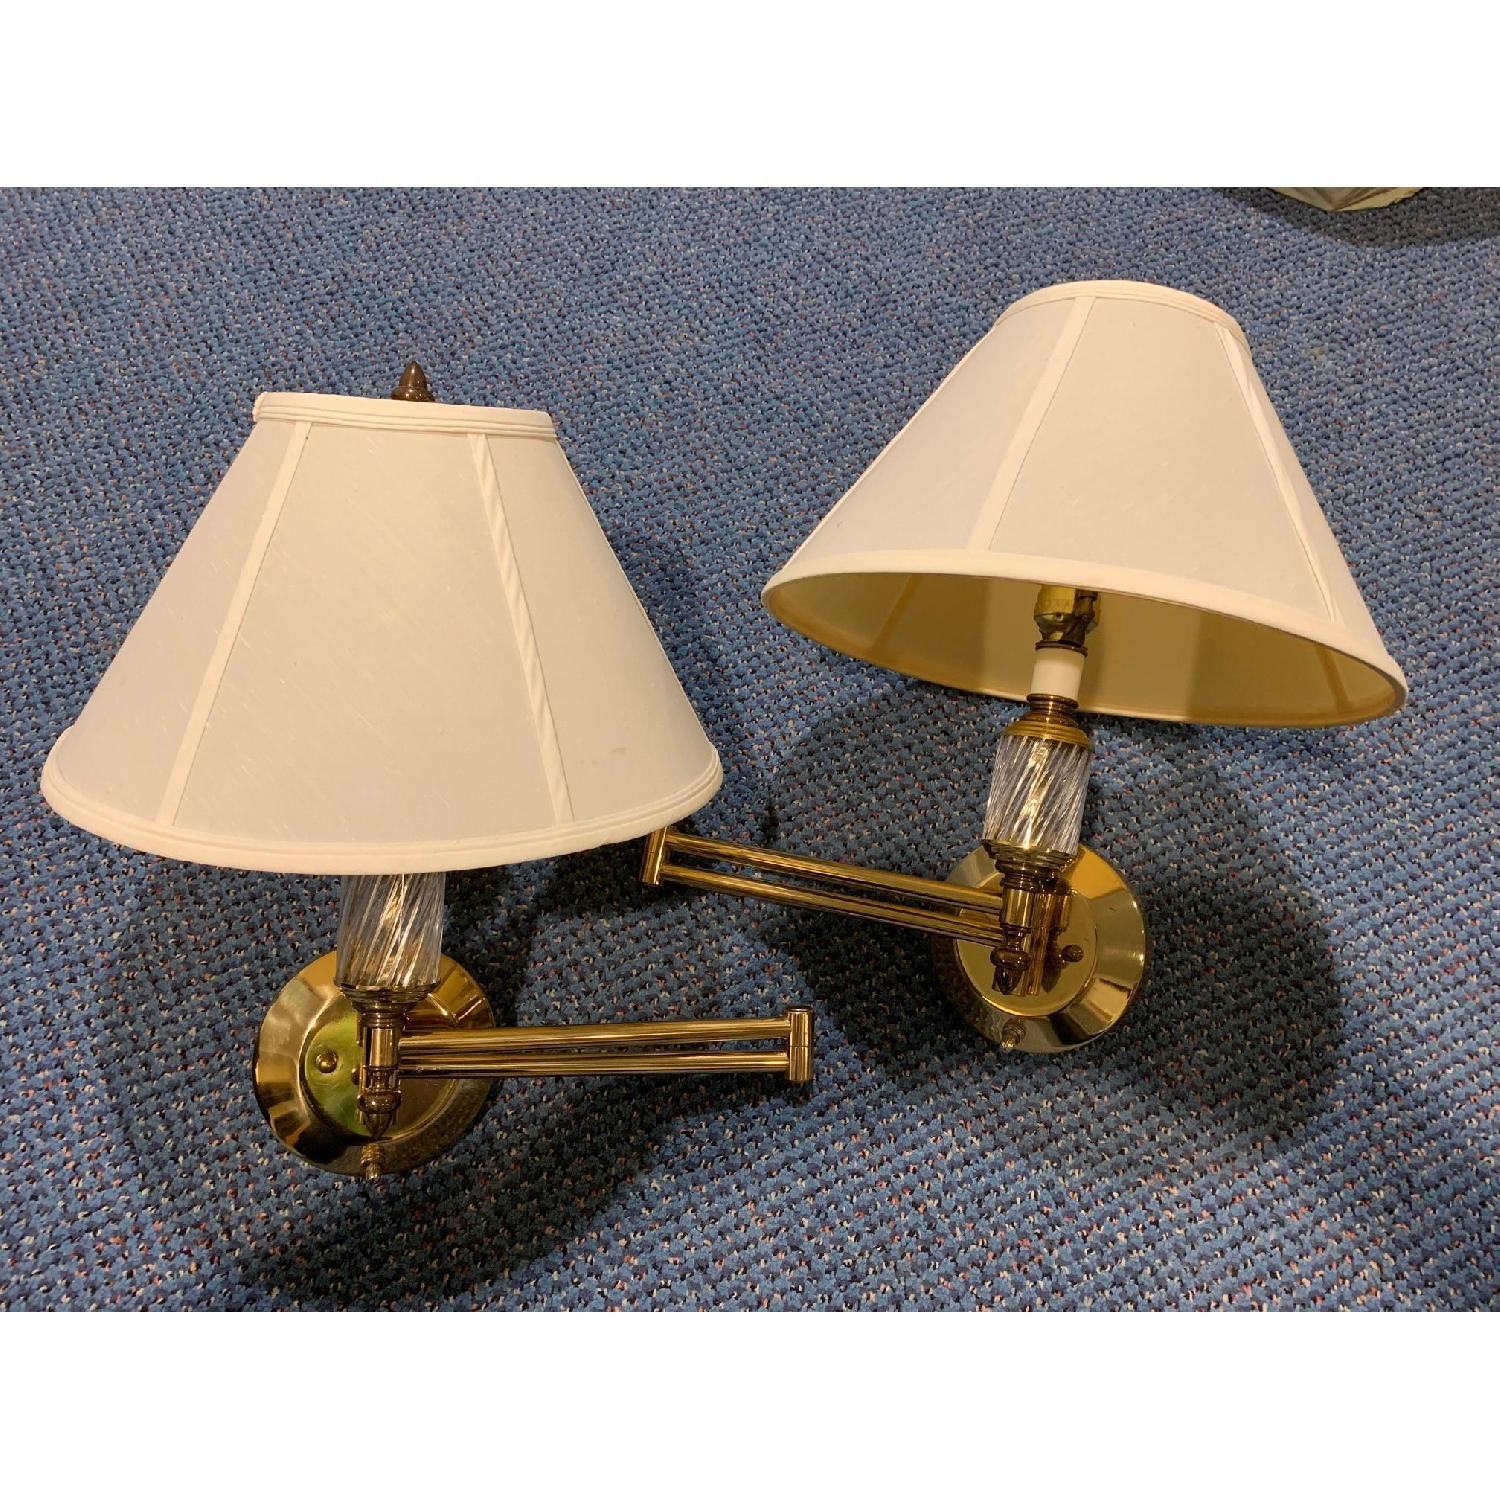 Brass Swing Arm Wall Lamps - image-3